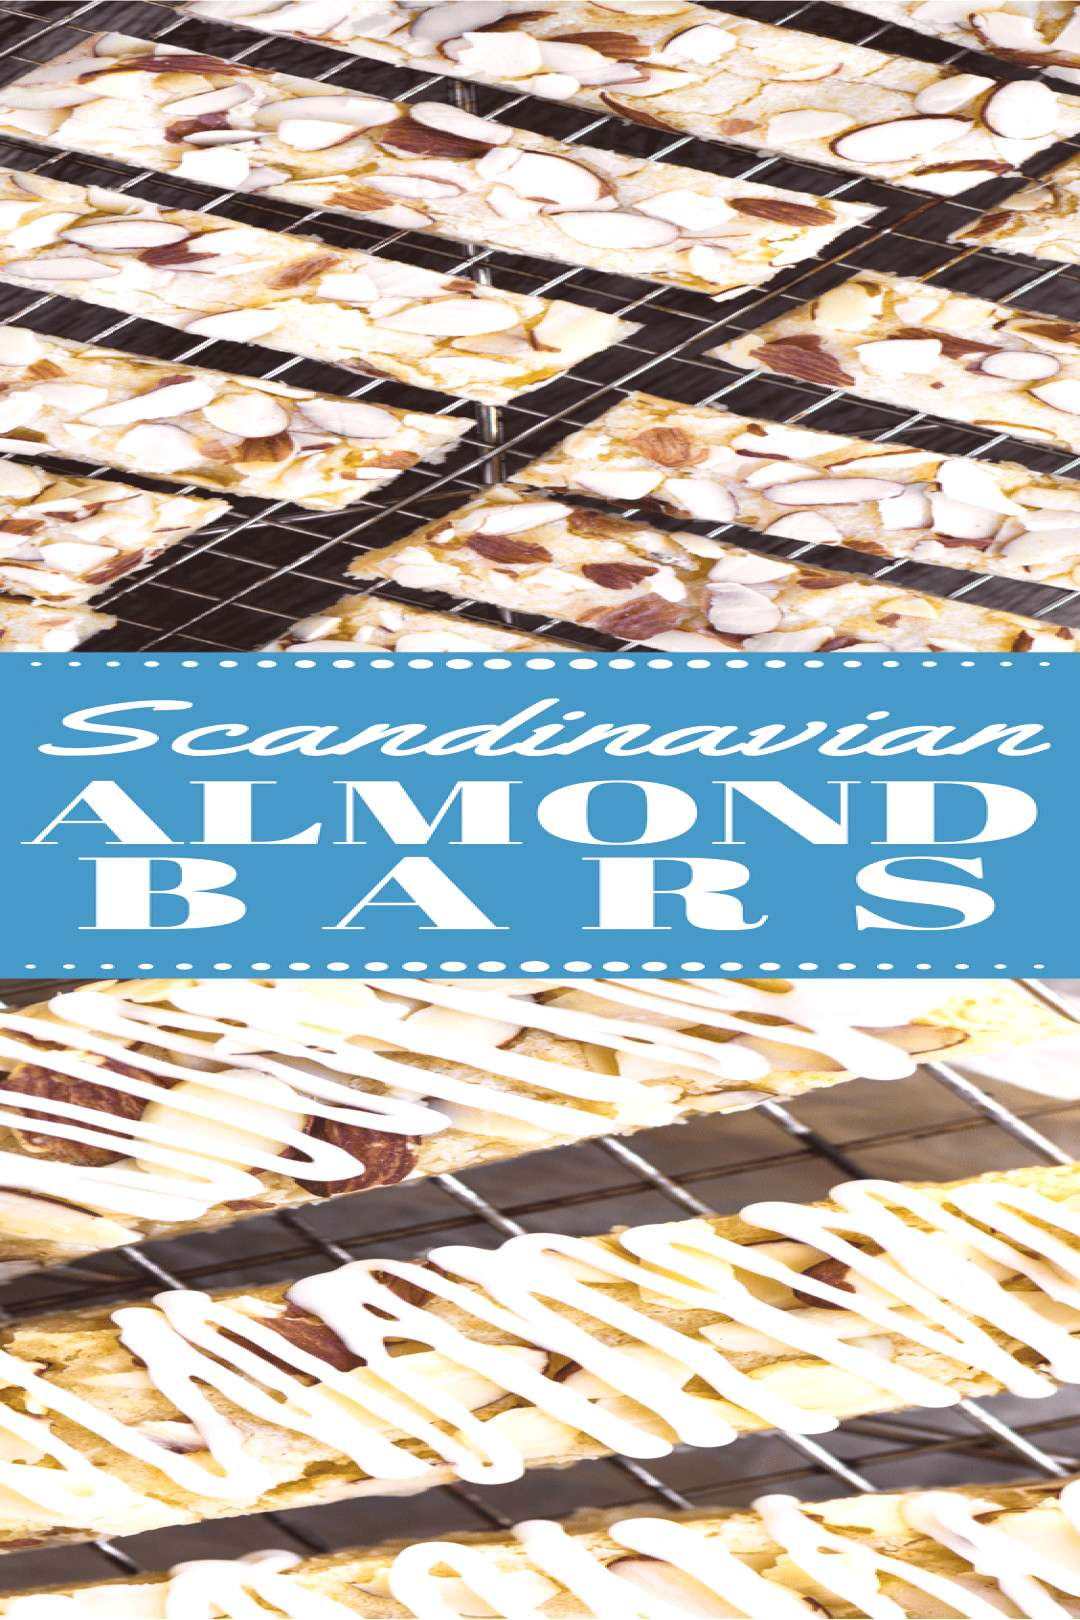 Scandinavian Almond Bars are soft, chewy shortbread bars jam packed with almond flavor ~ they freez